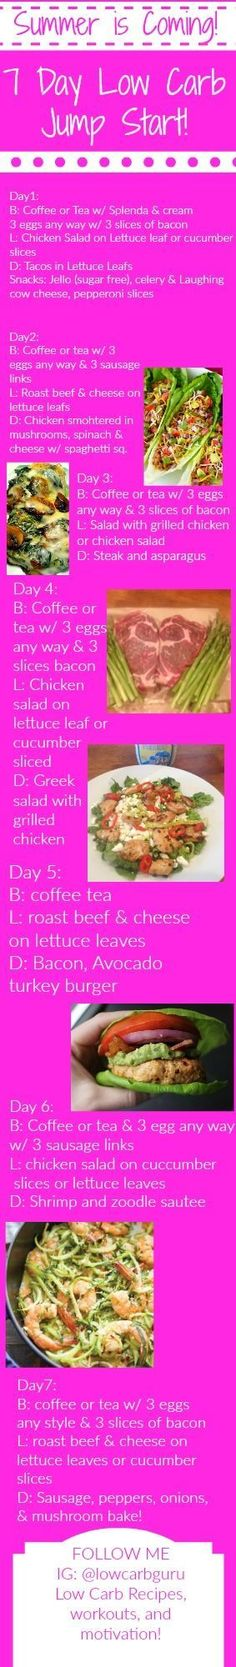 Summer Is Coming! 5 Day Low Carb Jump Start! via @5mintohealth #3WeekDiet